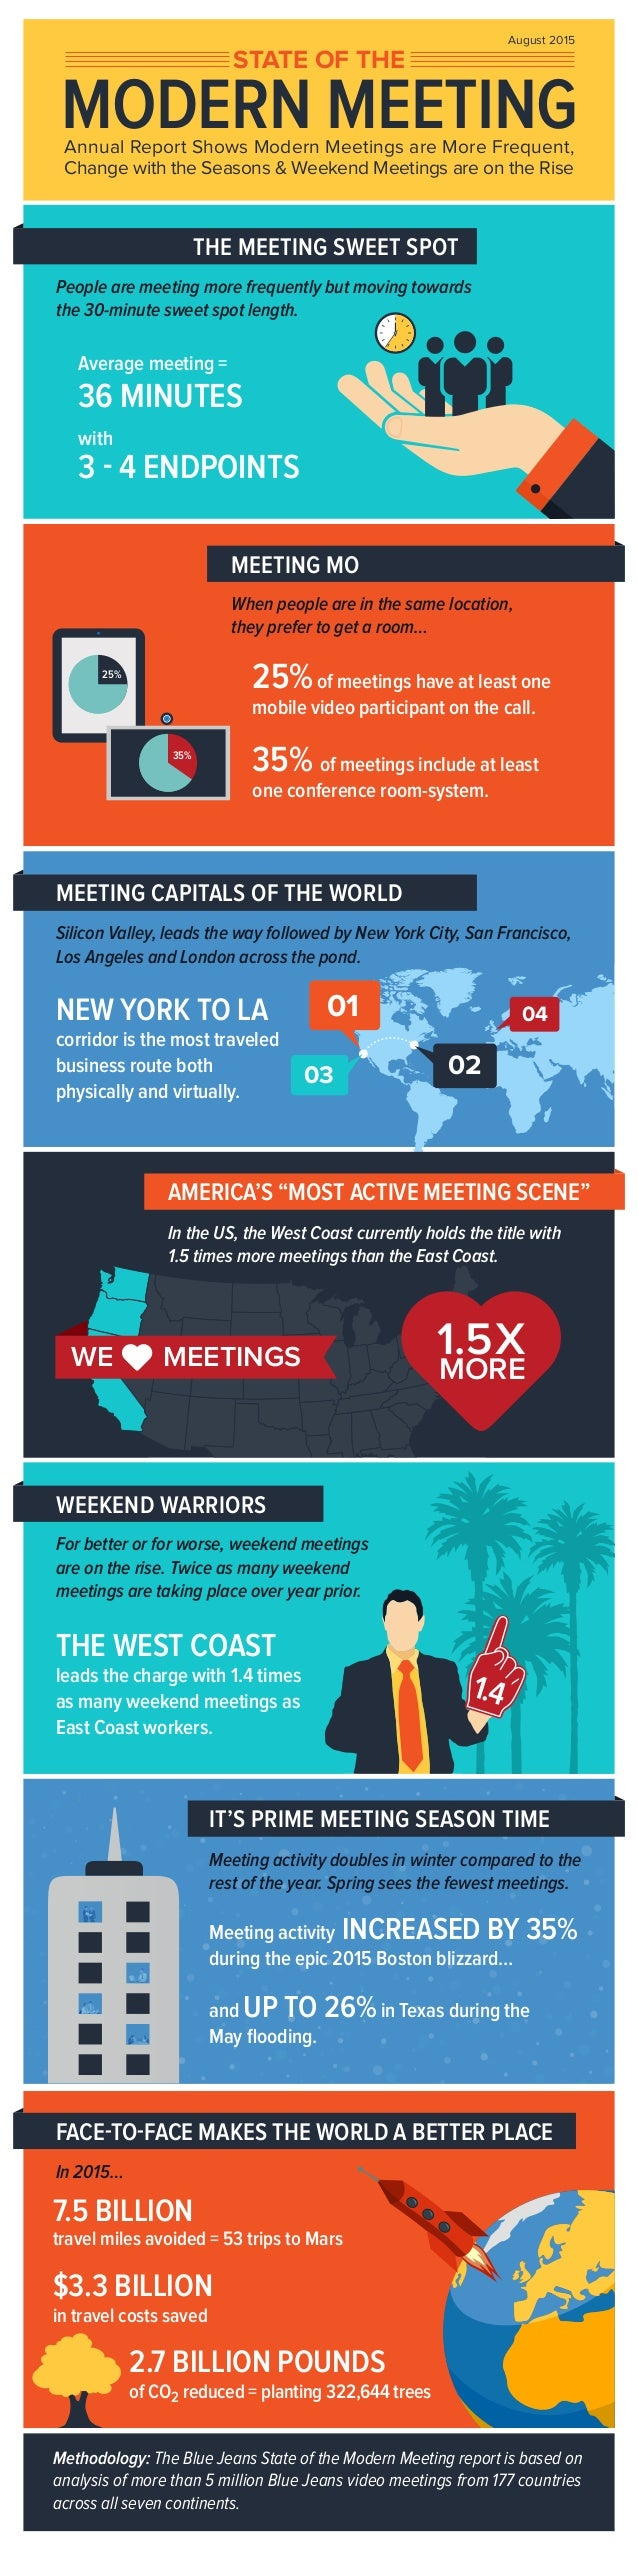 MODERN MEETING People are meeting more frequently but moving towards the 30-minute sweet spot length. Annual Report Shows ...